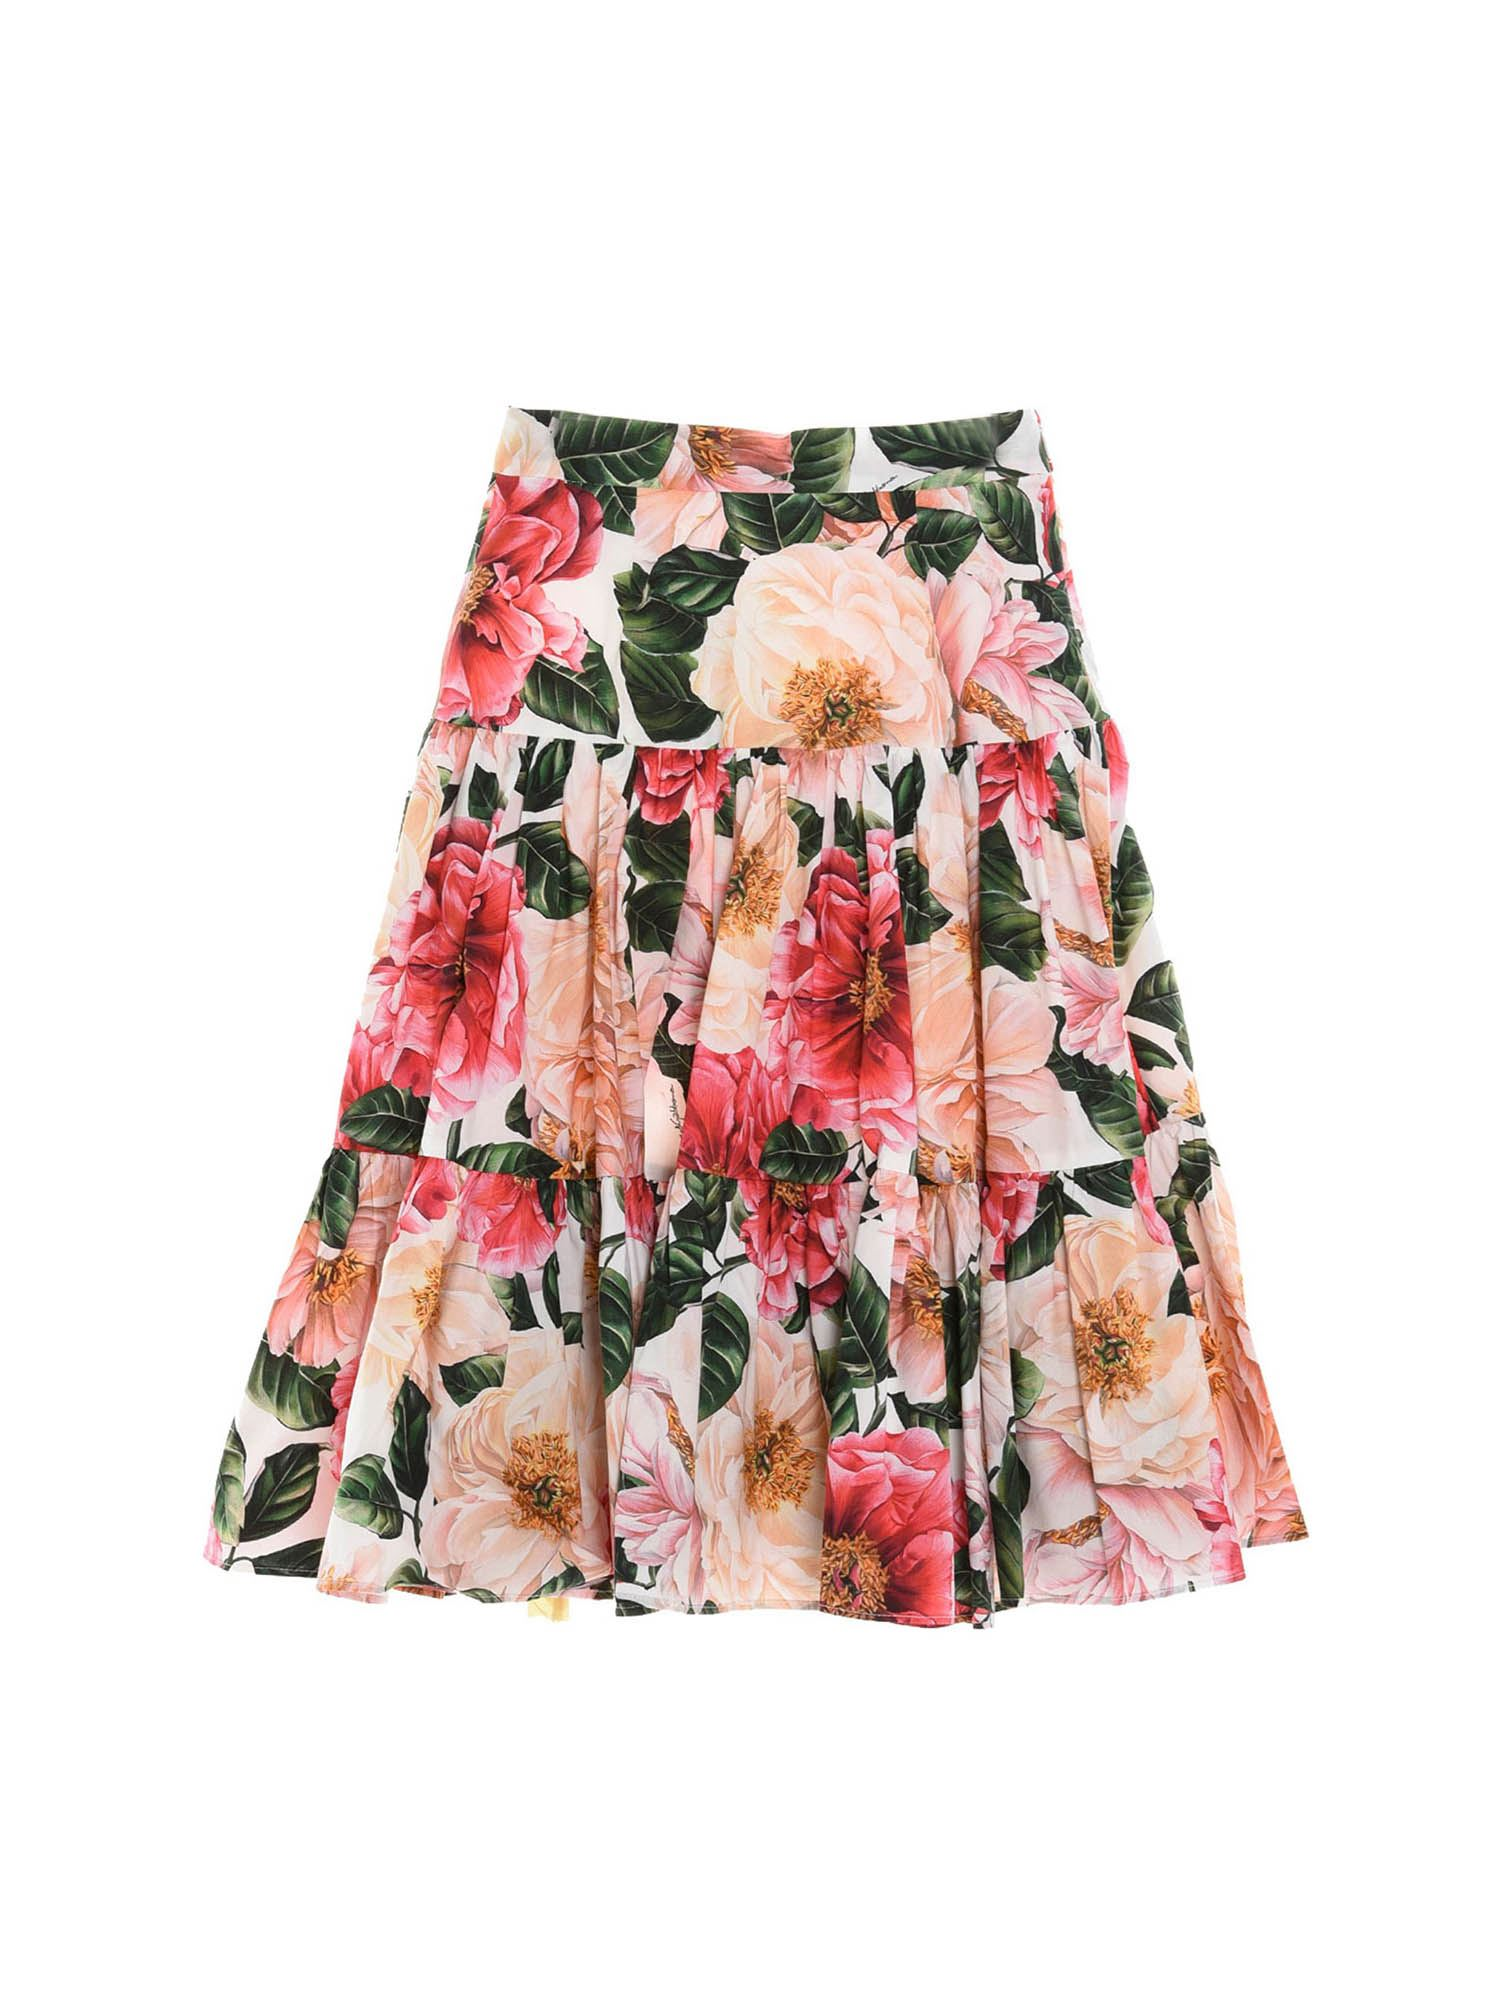 Dolce & Gabbana Jr CAMELLIA PRINT SKIRT IN MULTICOLOR